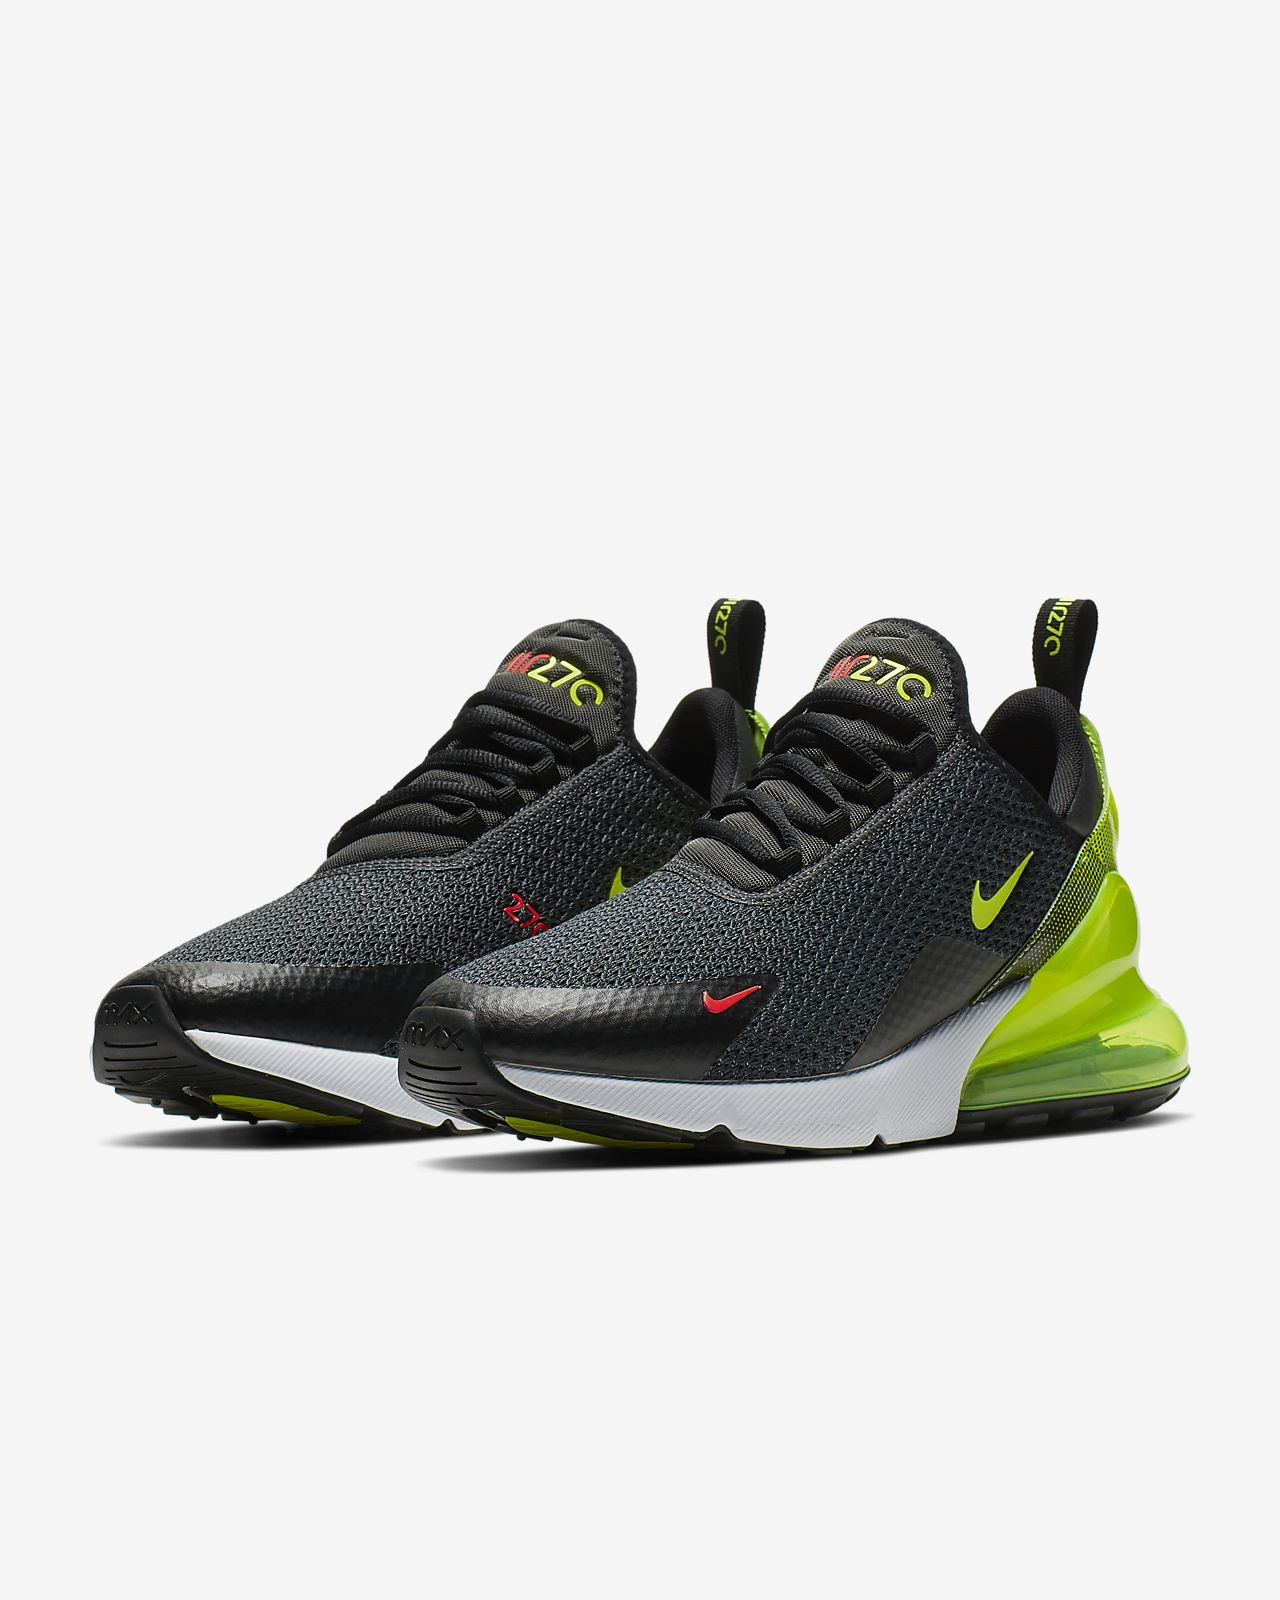 best website b6f9c 11afe Sko för män. Nike Air Max 270 SE